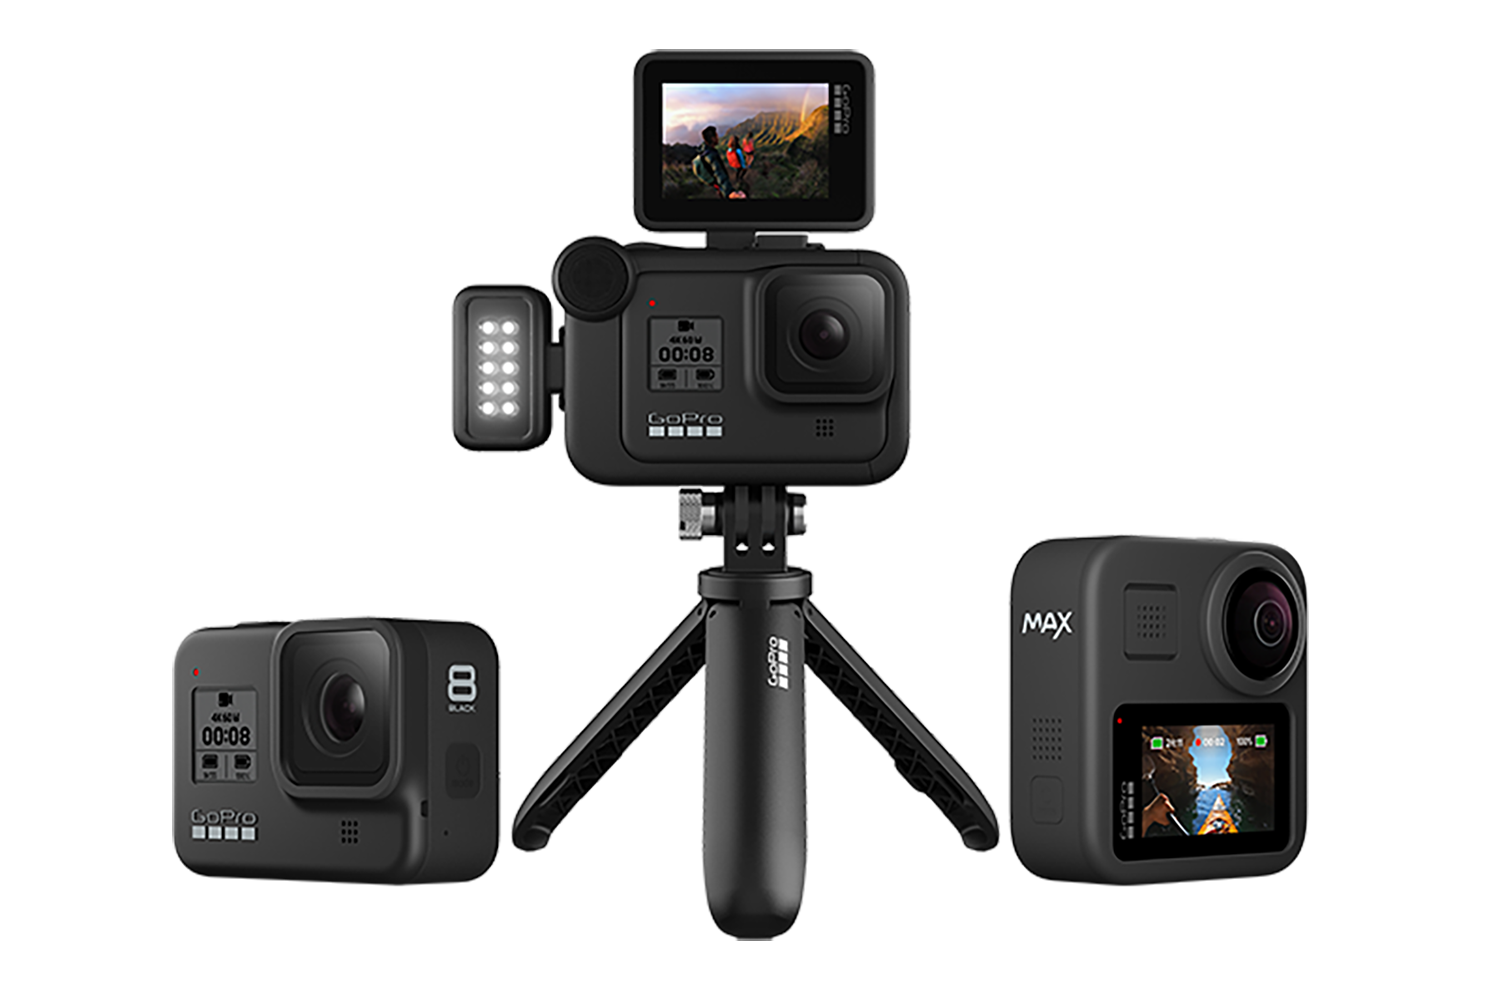 JUST ANNOUNCED: Camera, Lights, Action! GoPro Introduce HERO8 Black and Max Action Cameras